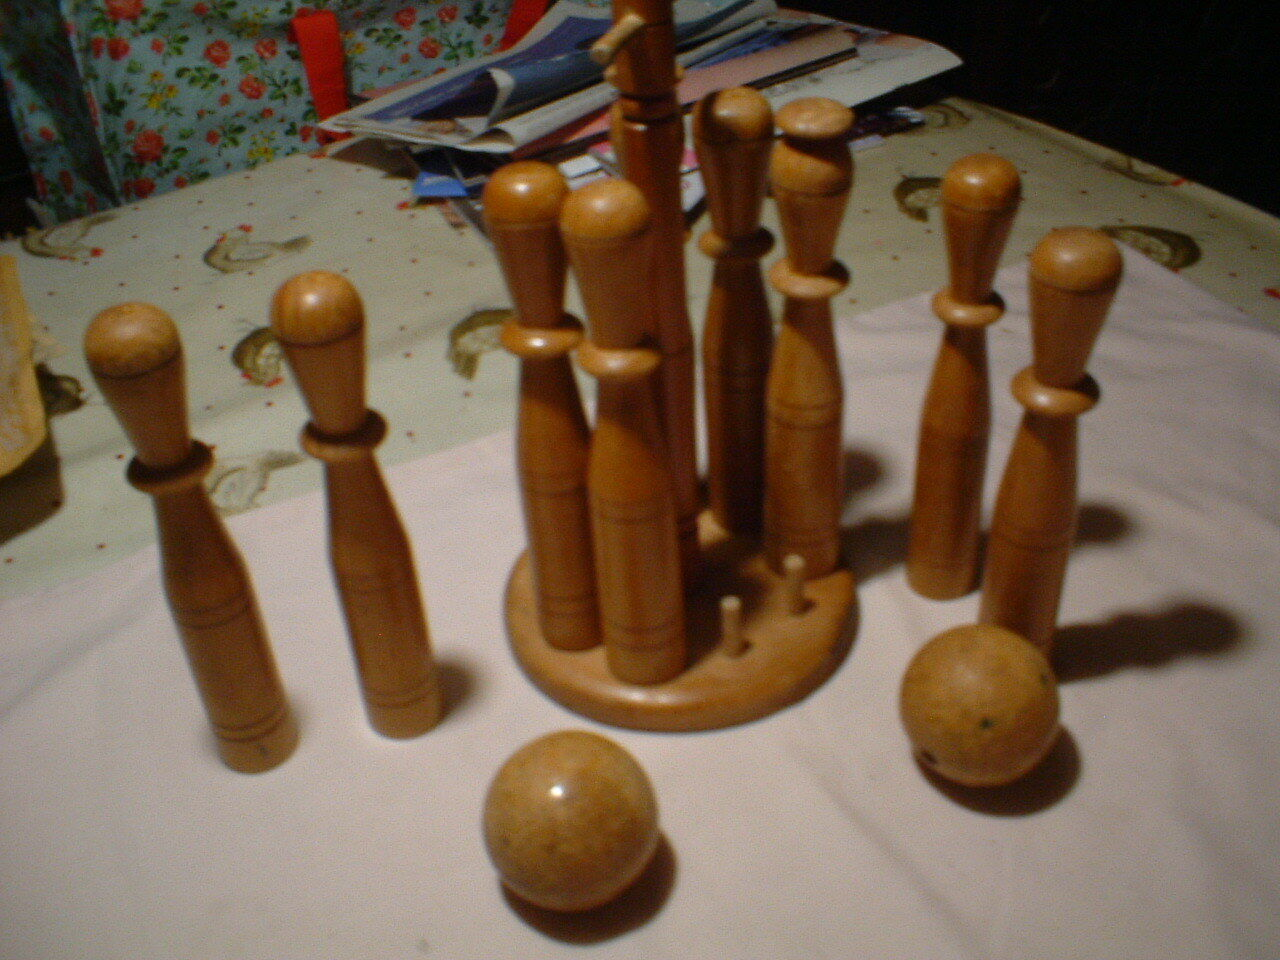 VICTORIAN SKITTLES full set in great condition